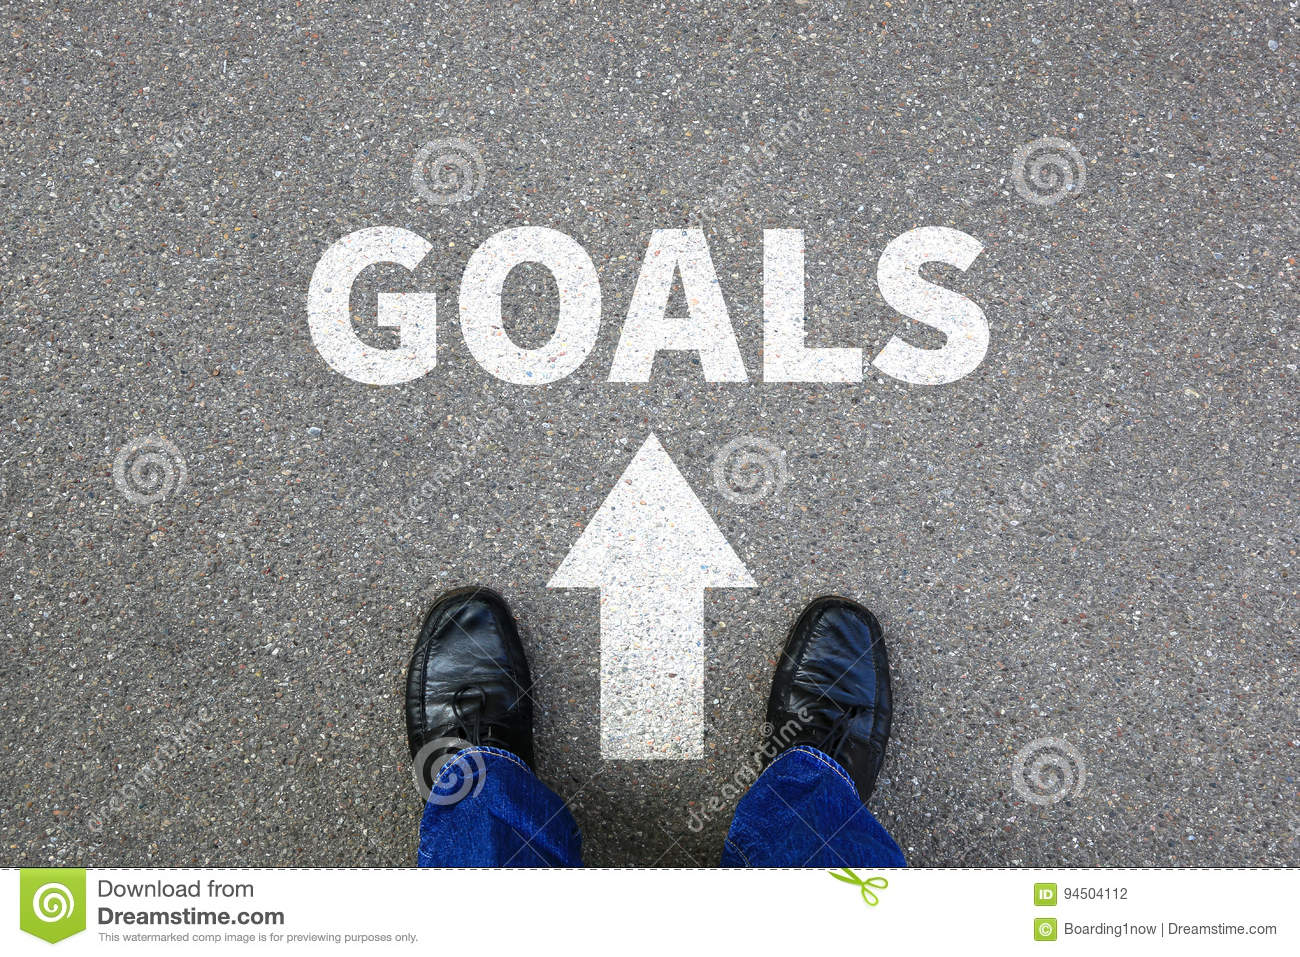 Goal goals setting success new aspirations strategy future businessman business concept